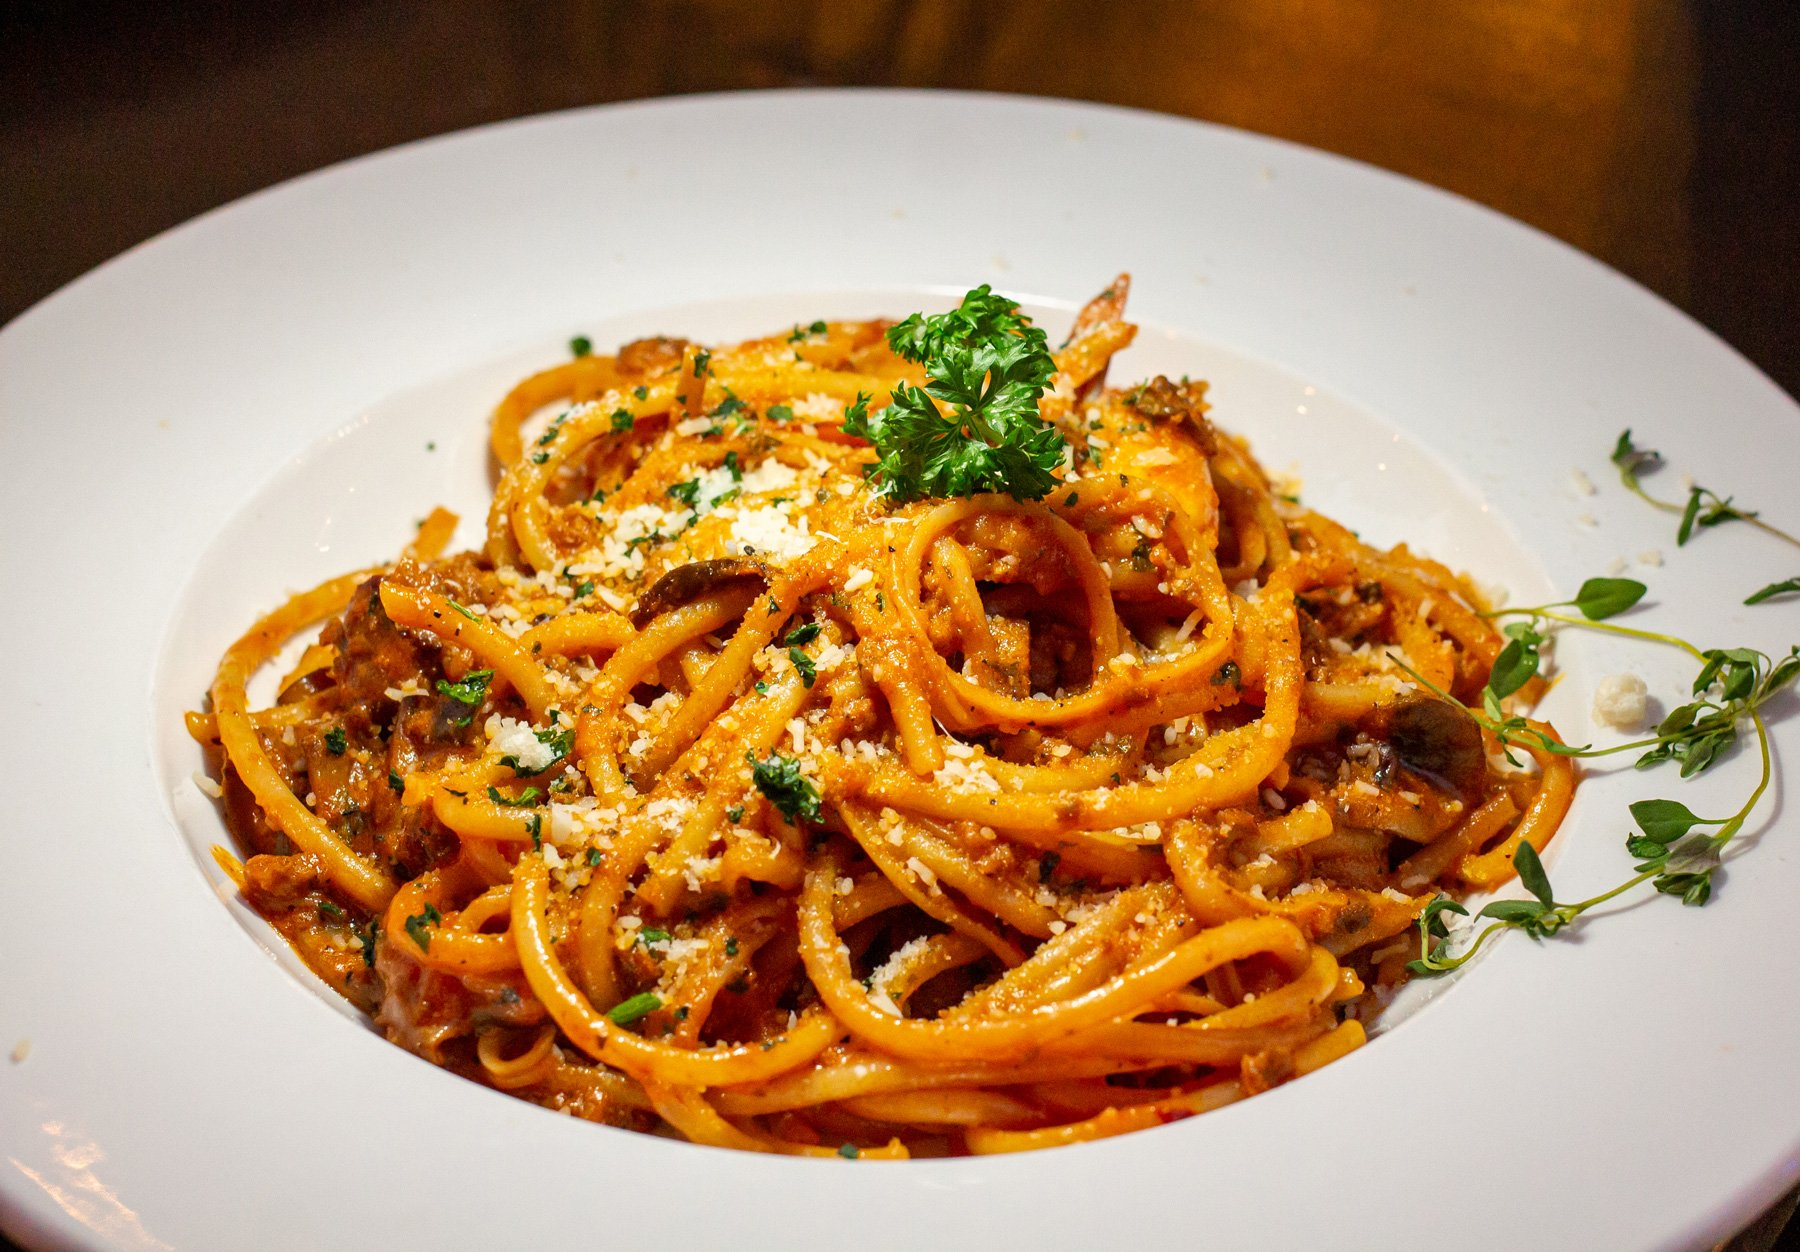 Pasta noodles in a red sauce with parsley on top on a white plate.